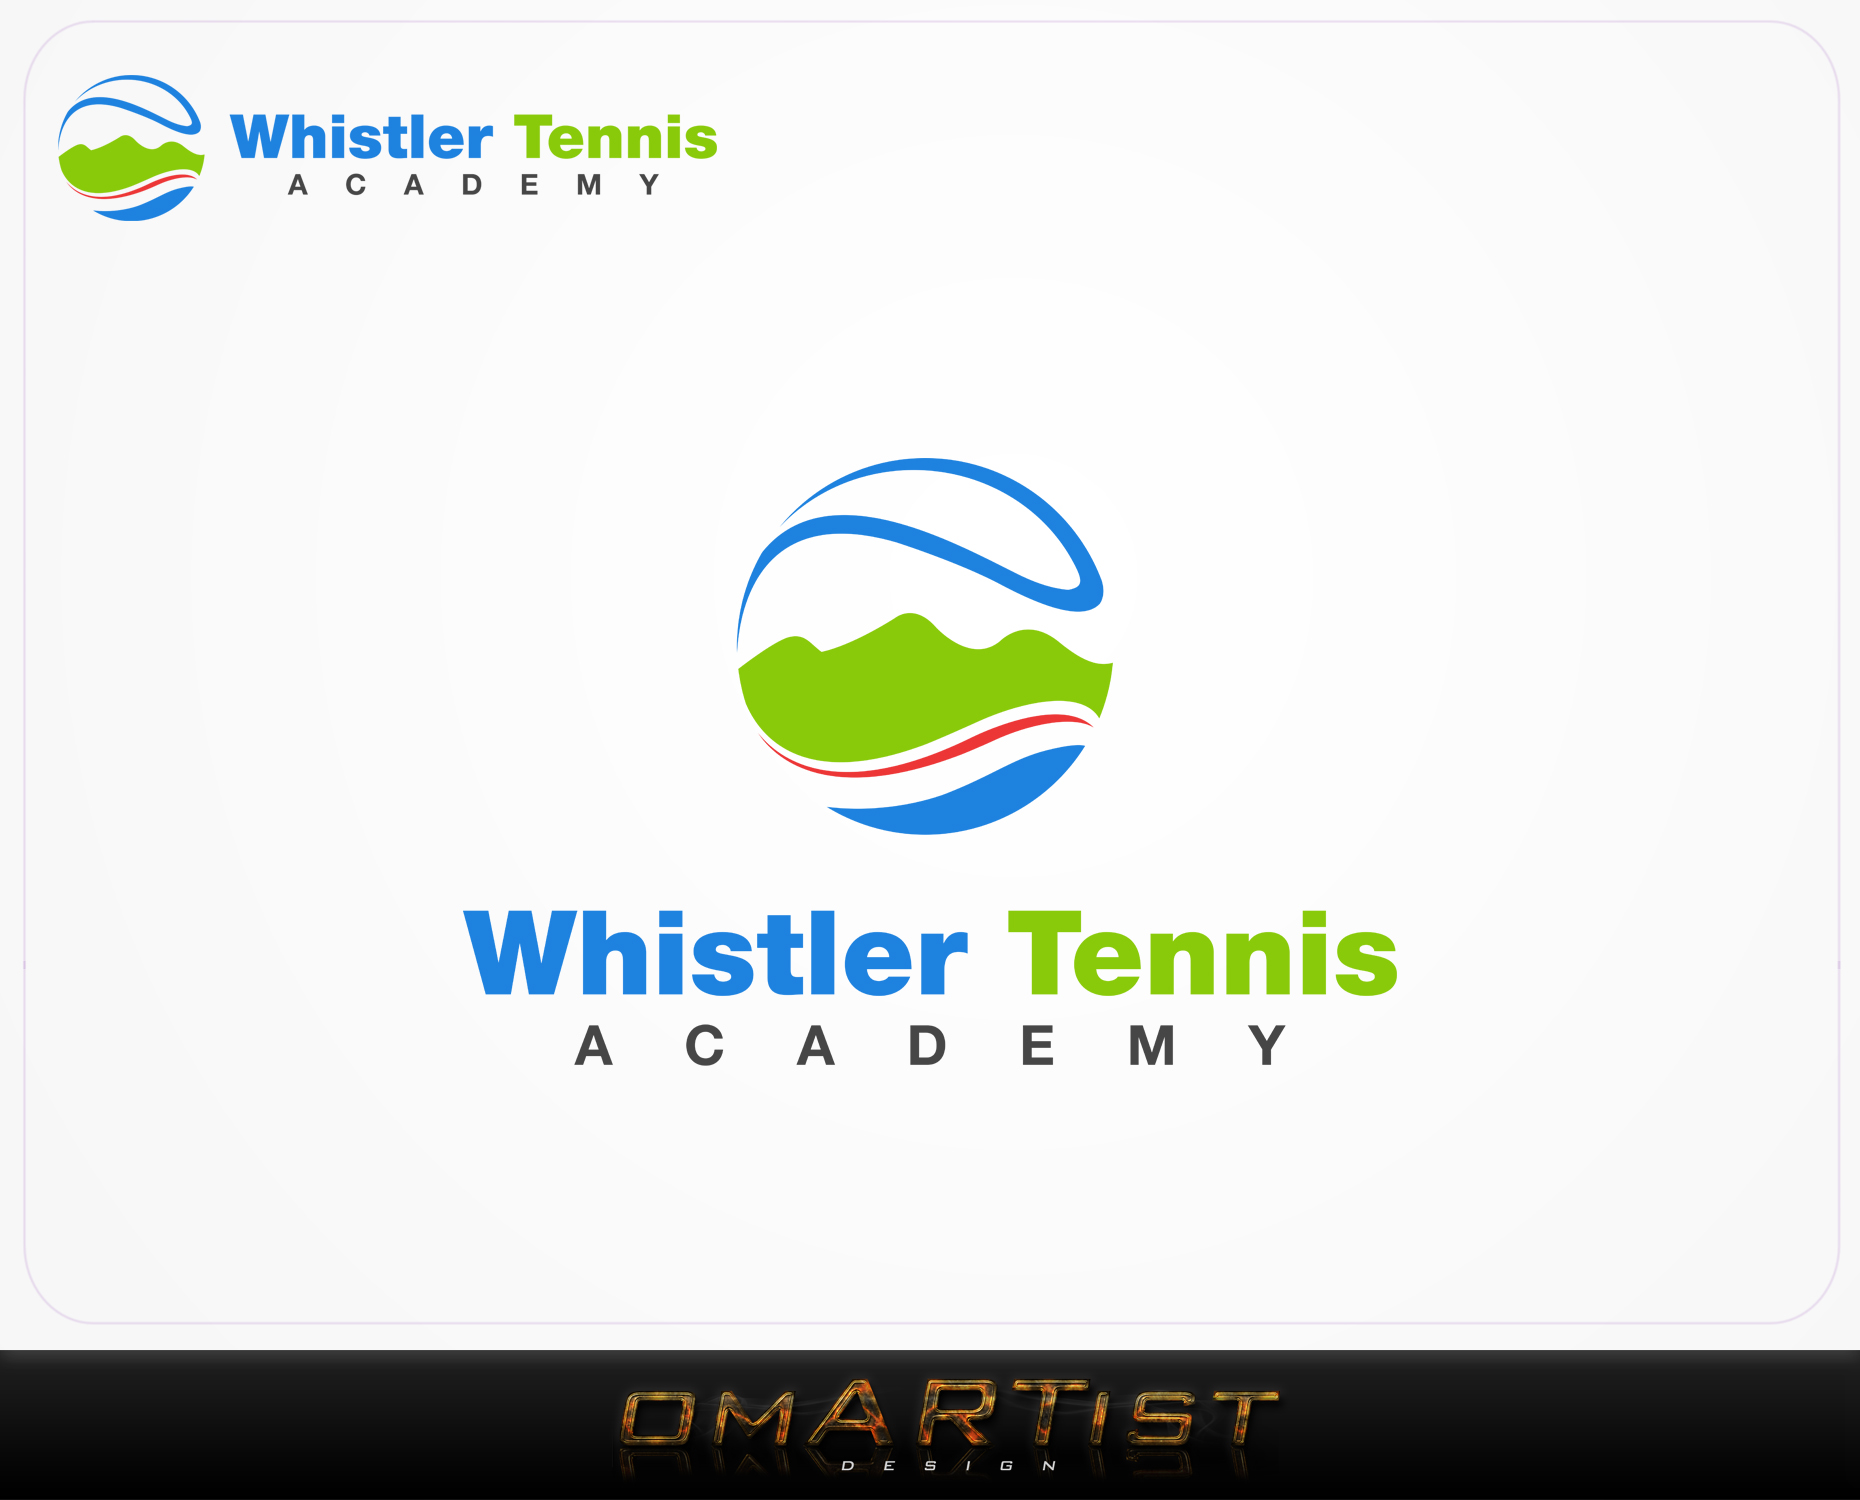 Logo Design by omARTist - Entry No. 167 in the Logo Design Contest Imaginative Logo Design for Whistler Tennis Academy.